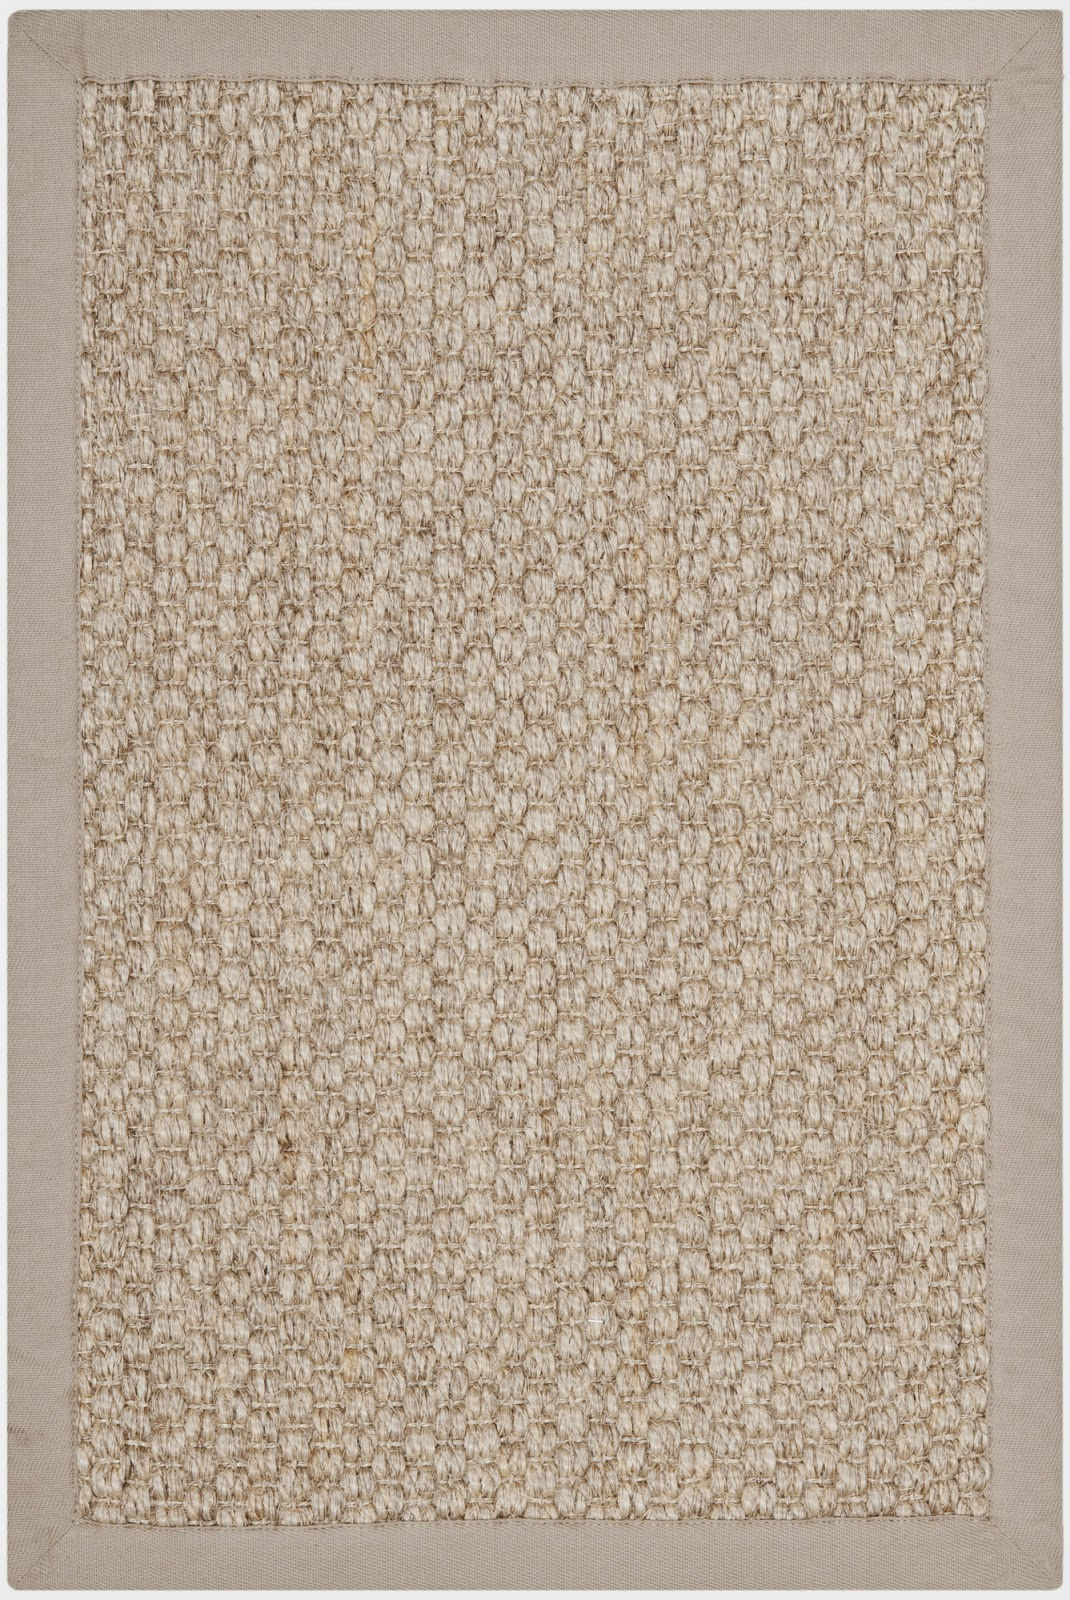 Rug Rundown Jute Amp Sisal A Polished Palate